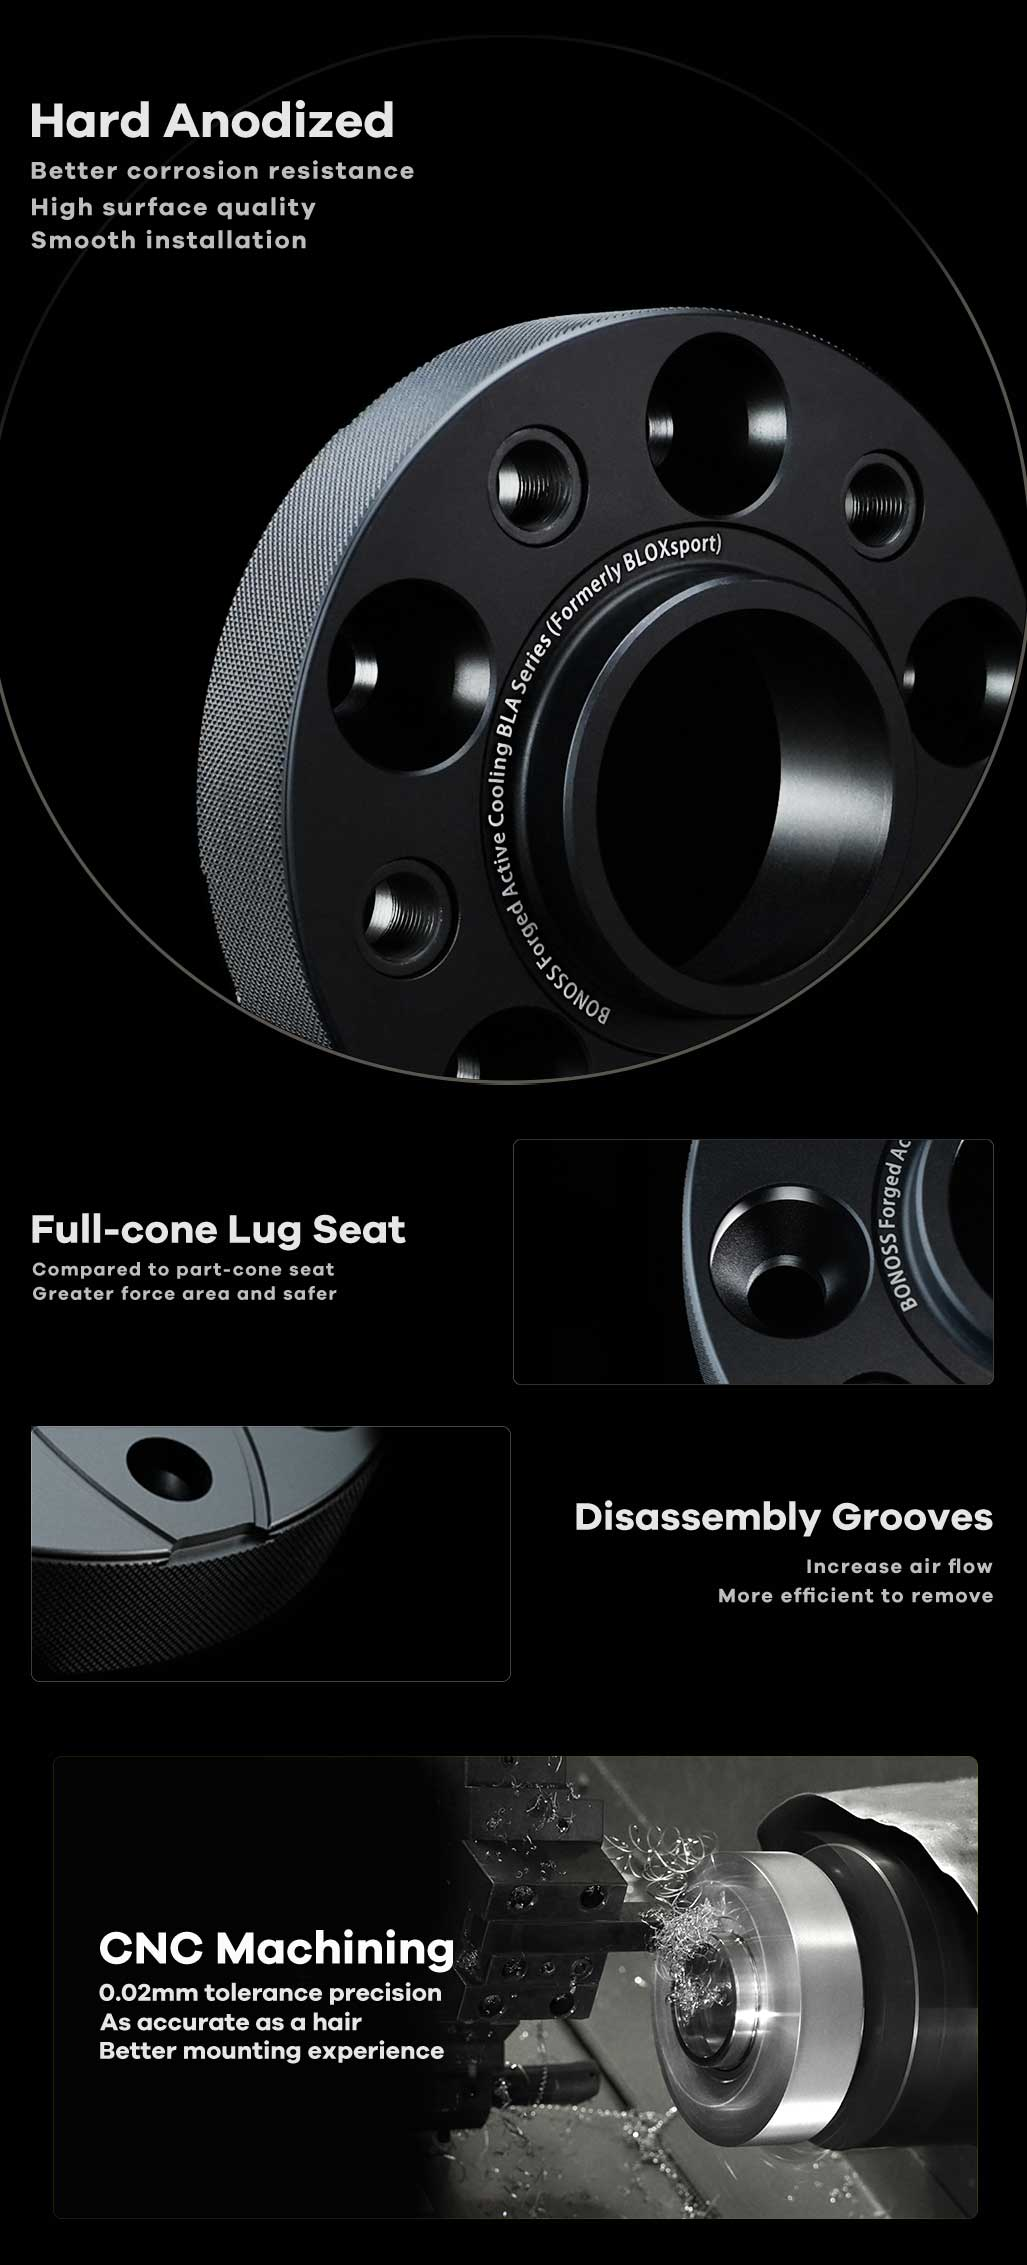 BONOSS-forged-active-cooling-5-Lug-PCD5x120-wheel-spacers-(custom-wheel-spacers)-by-lulu-3